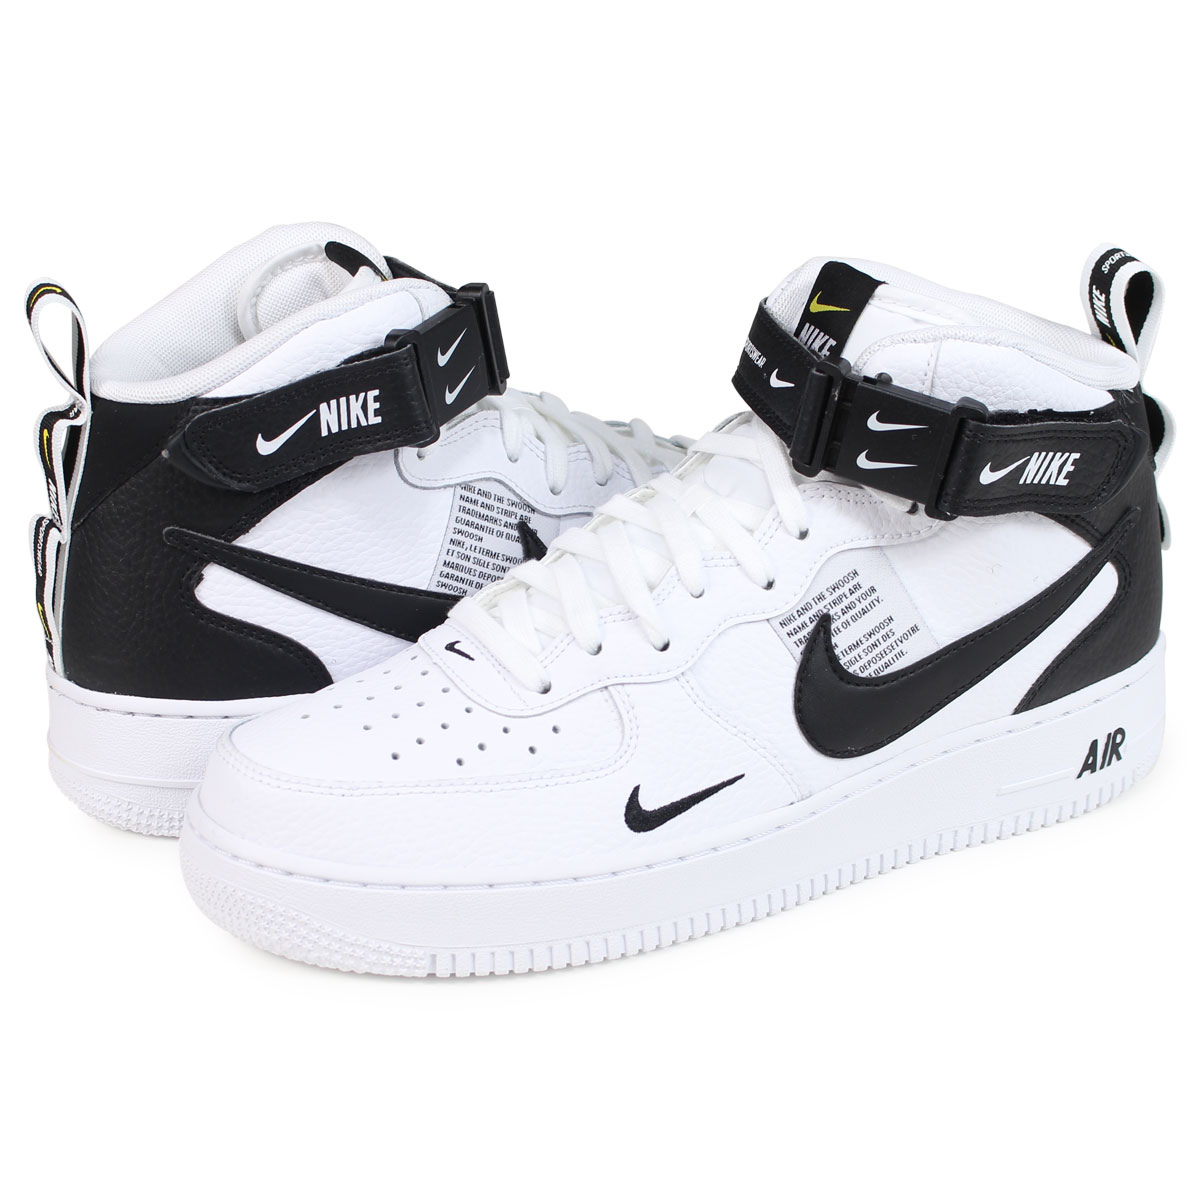 Nike Air Force 1 Mid '07 LV8 WhiteBlack Tour Yellow 804609 103 | Authentic Verification